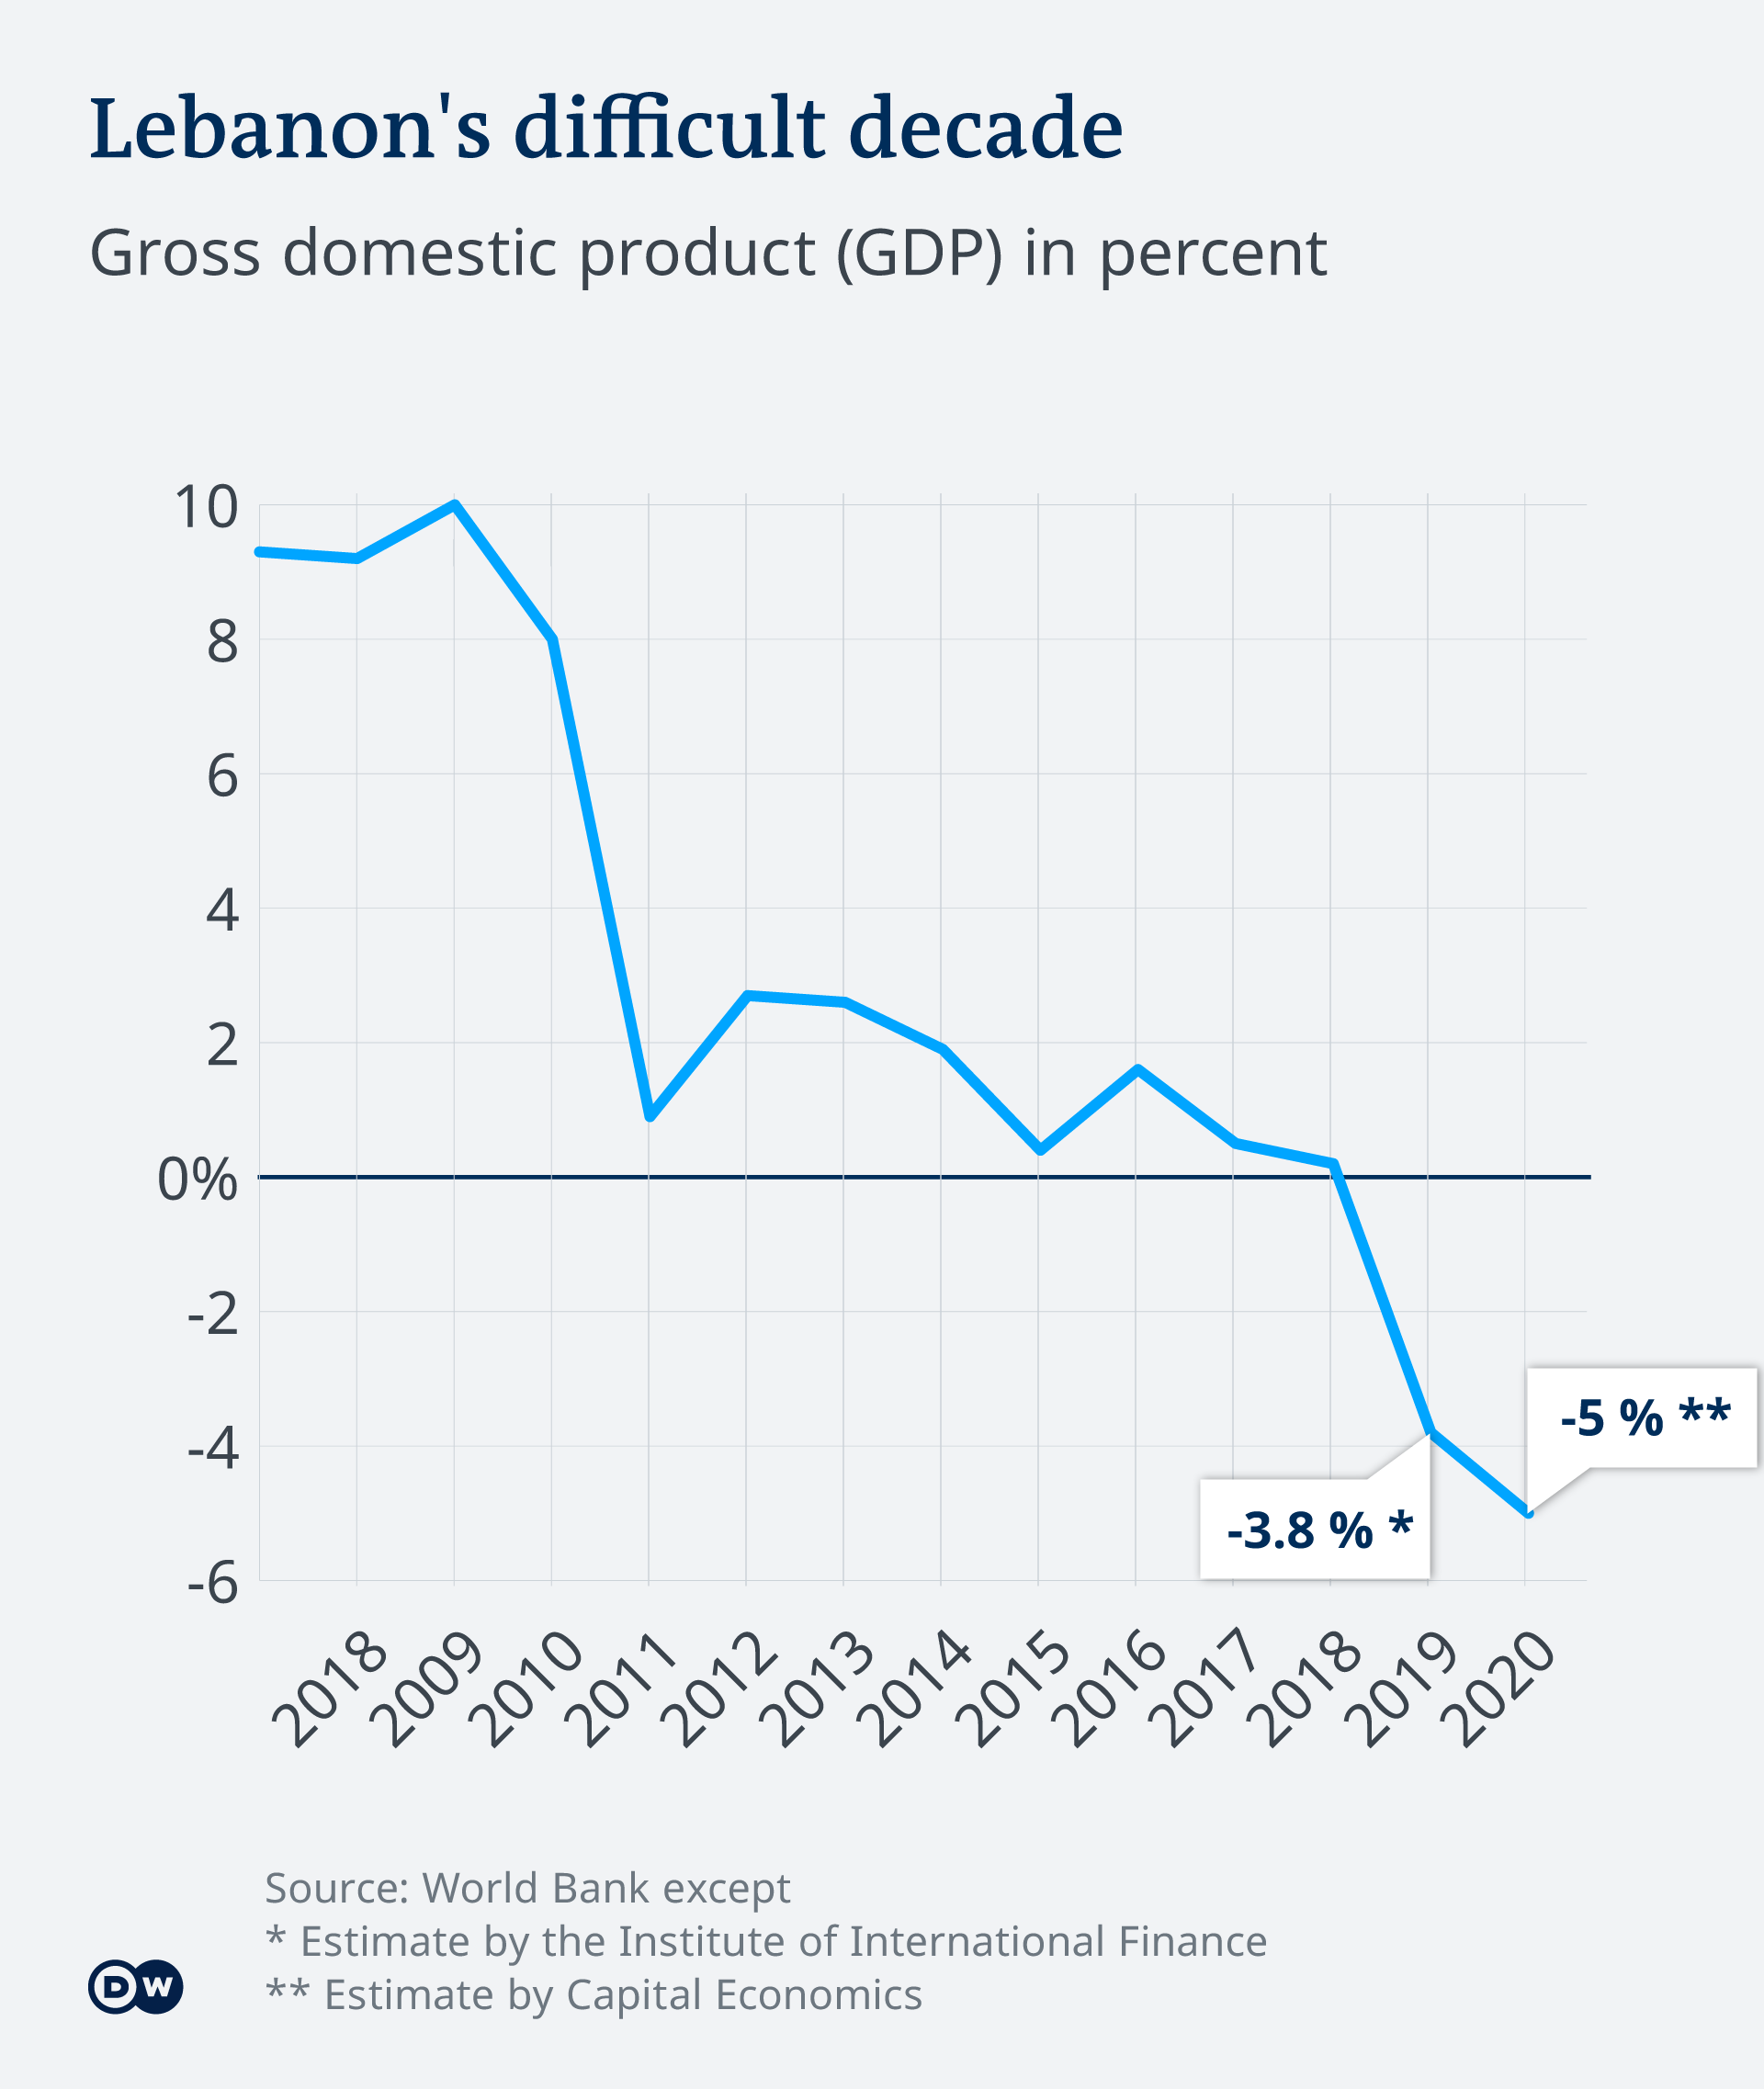 Lebanon's difficult decade in GDP